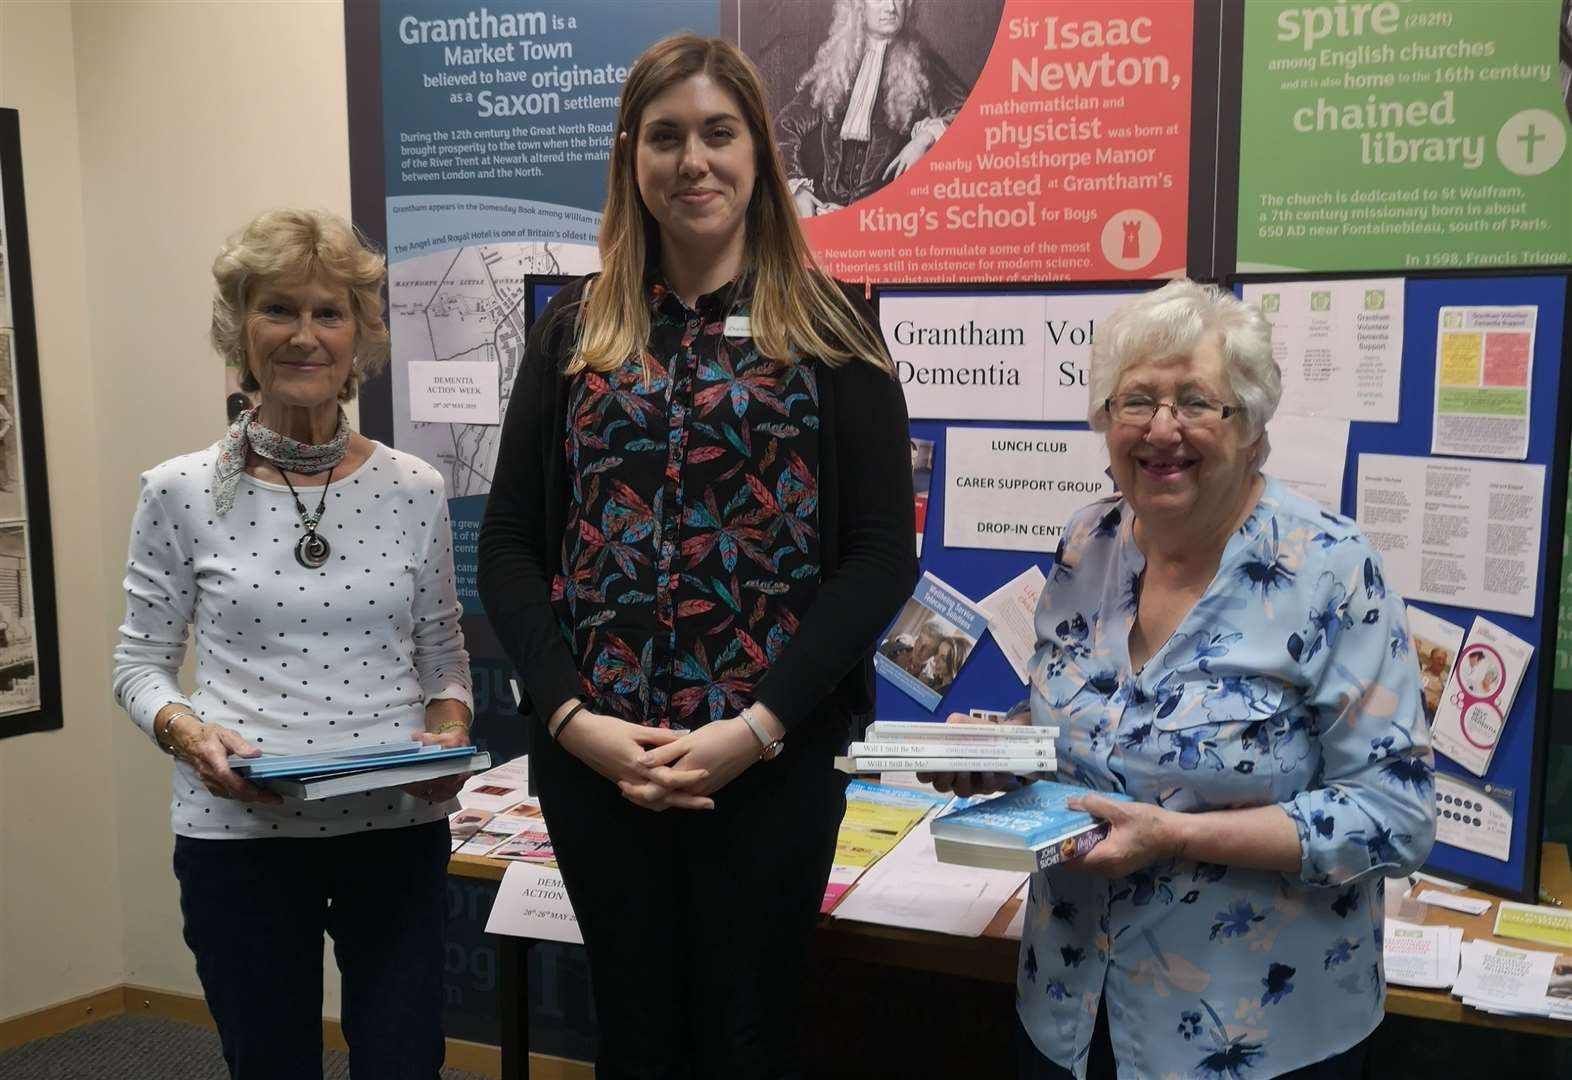 Dementia books donated to library to boost awareness of disease